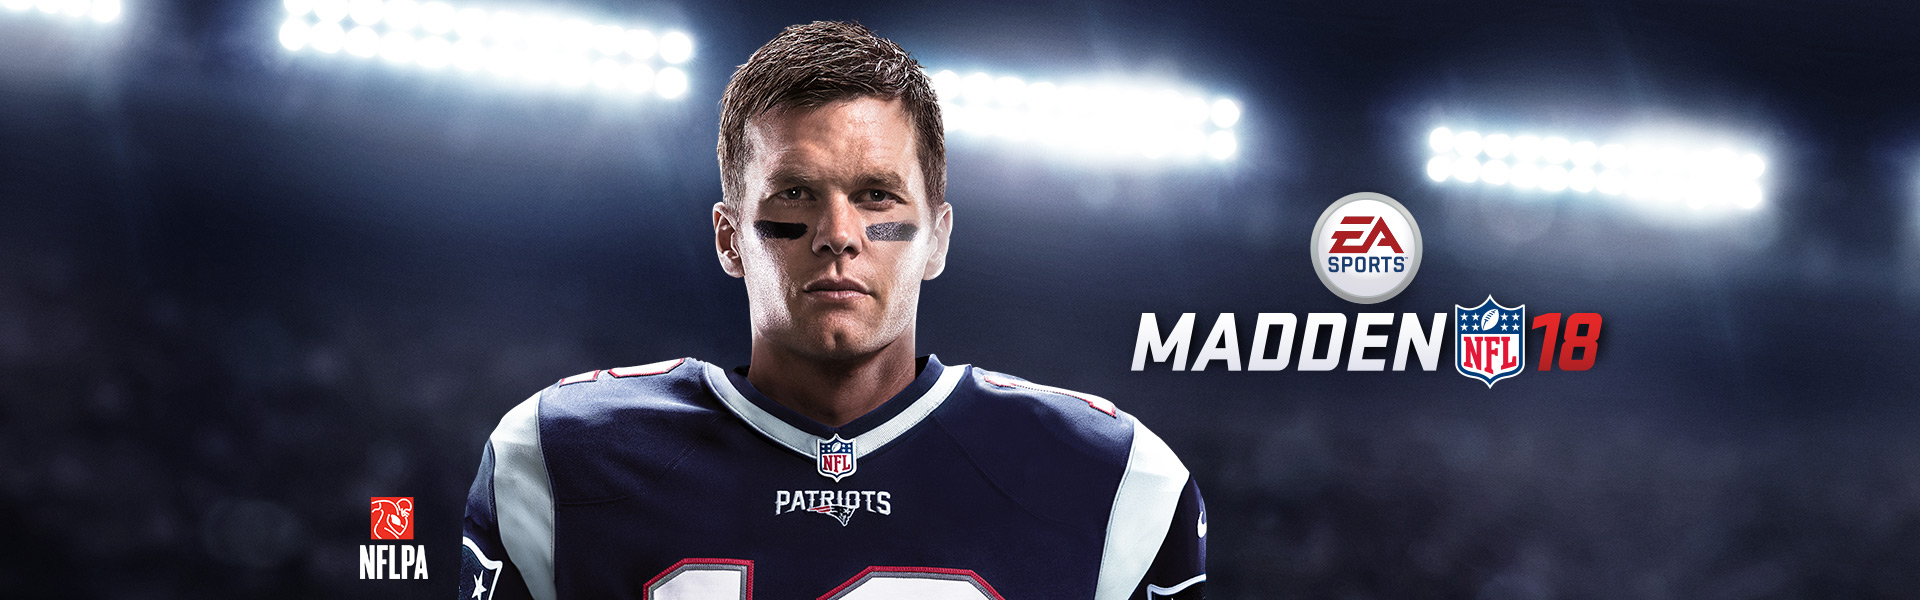 Tom Brady vestido no uniforme do Patriots